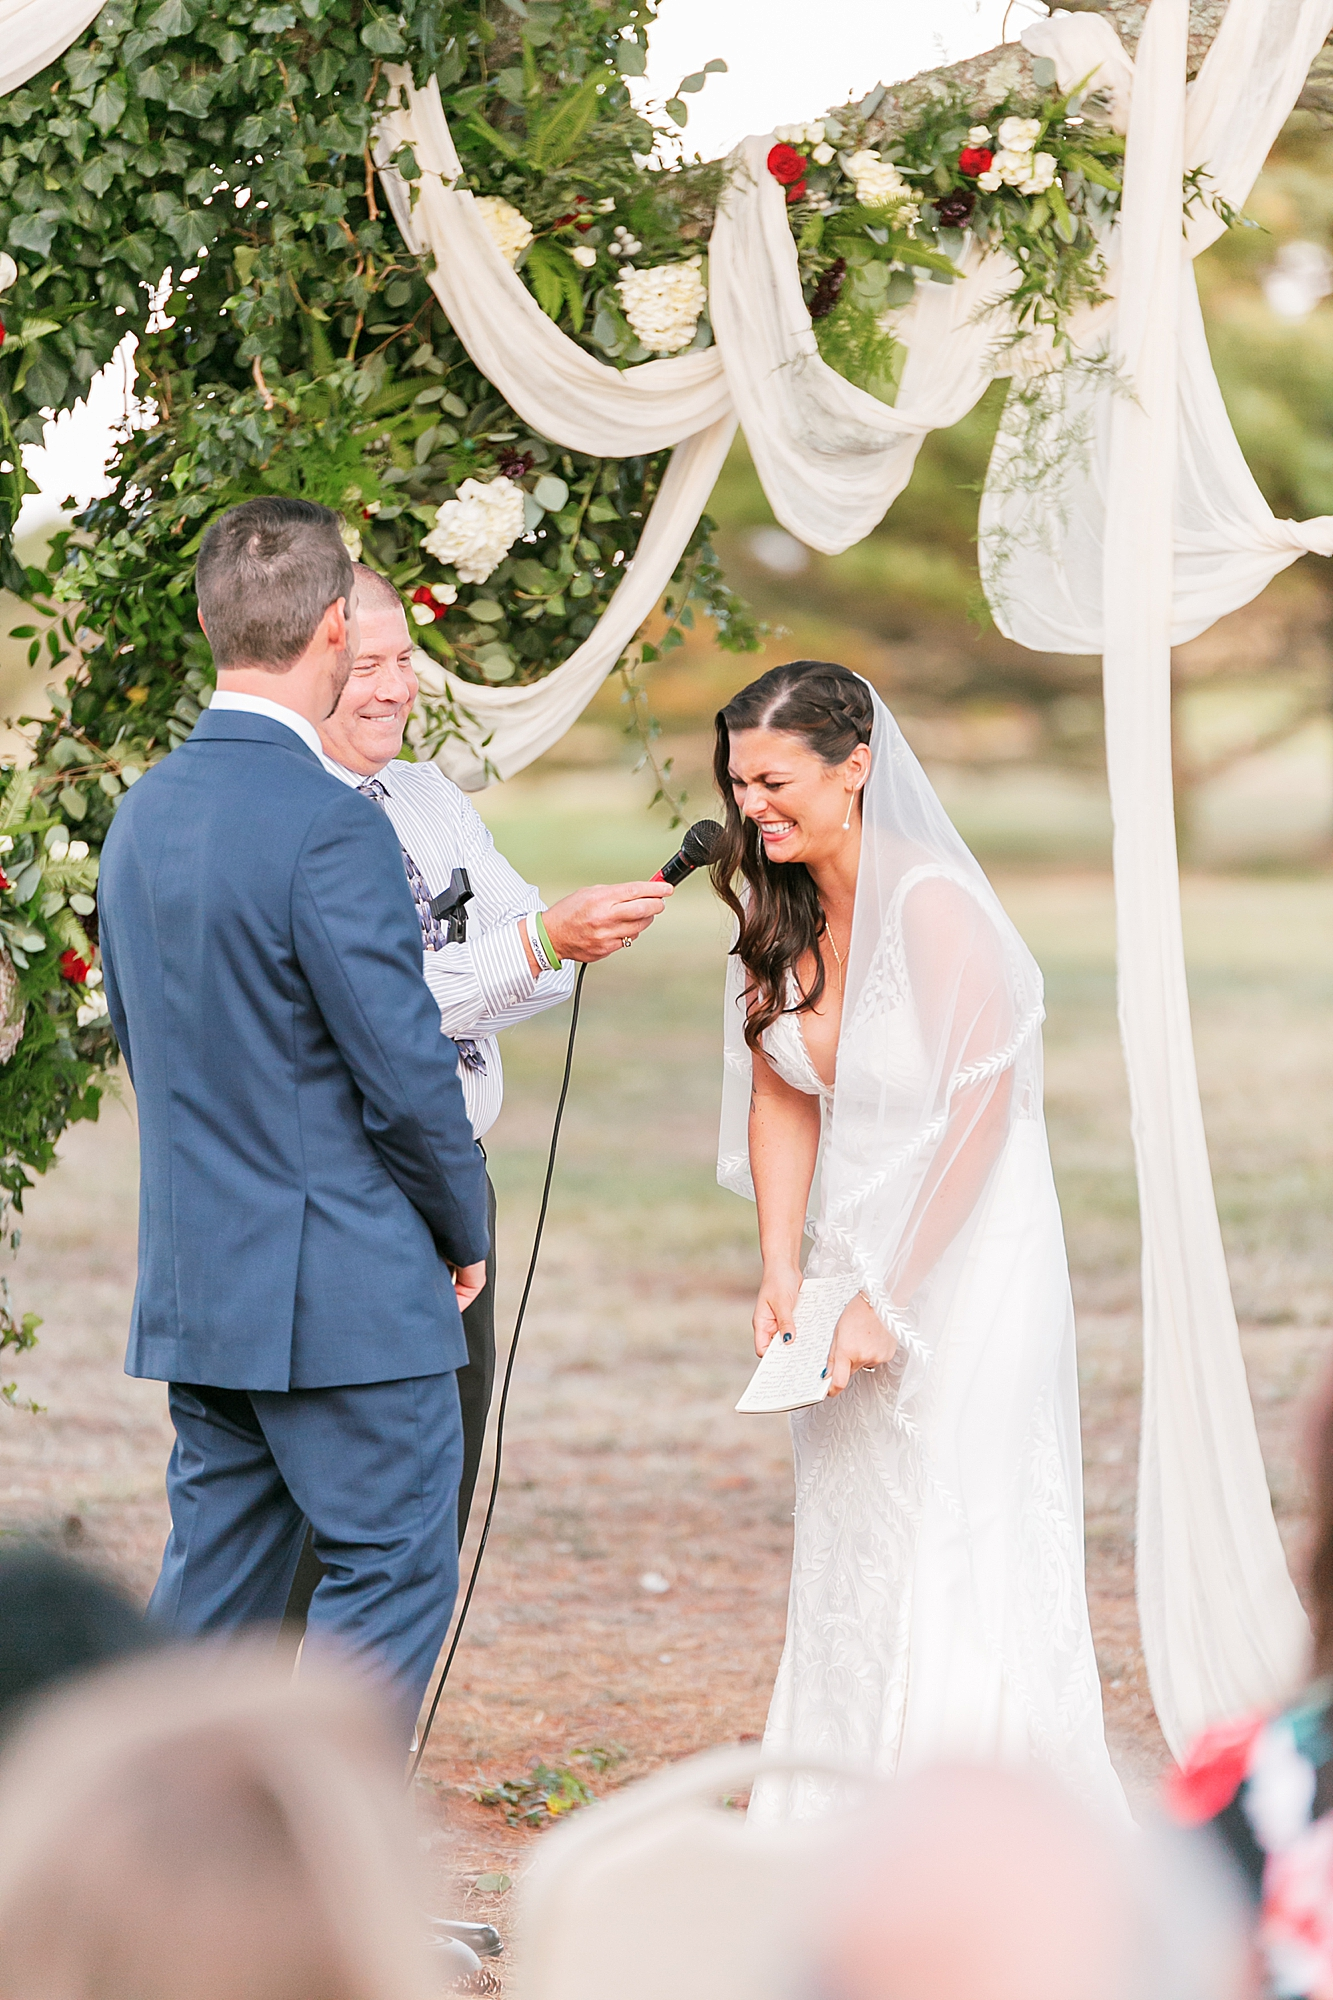 Linwood Country Club Film Wedding Photography by Magdalena Studios South Jersey Wedding Photographer 19